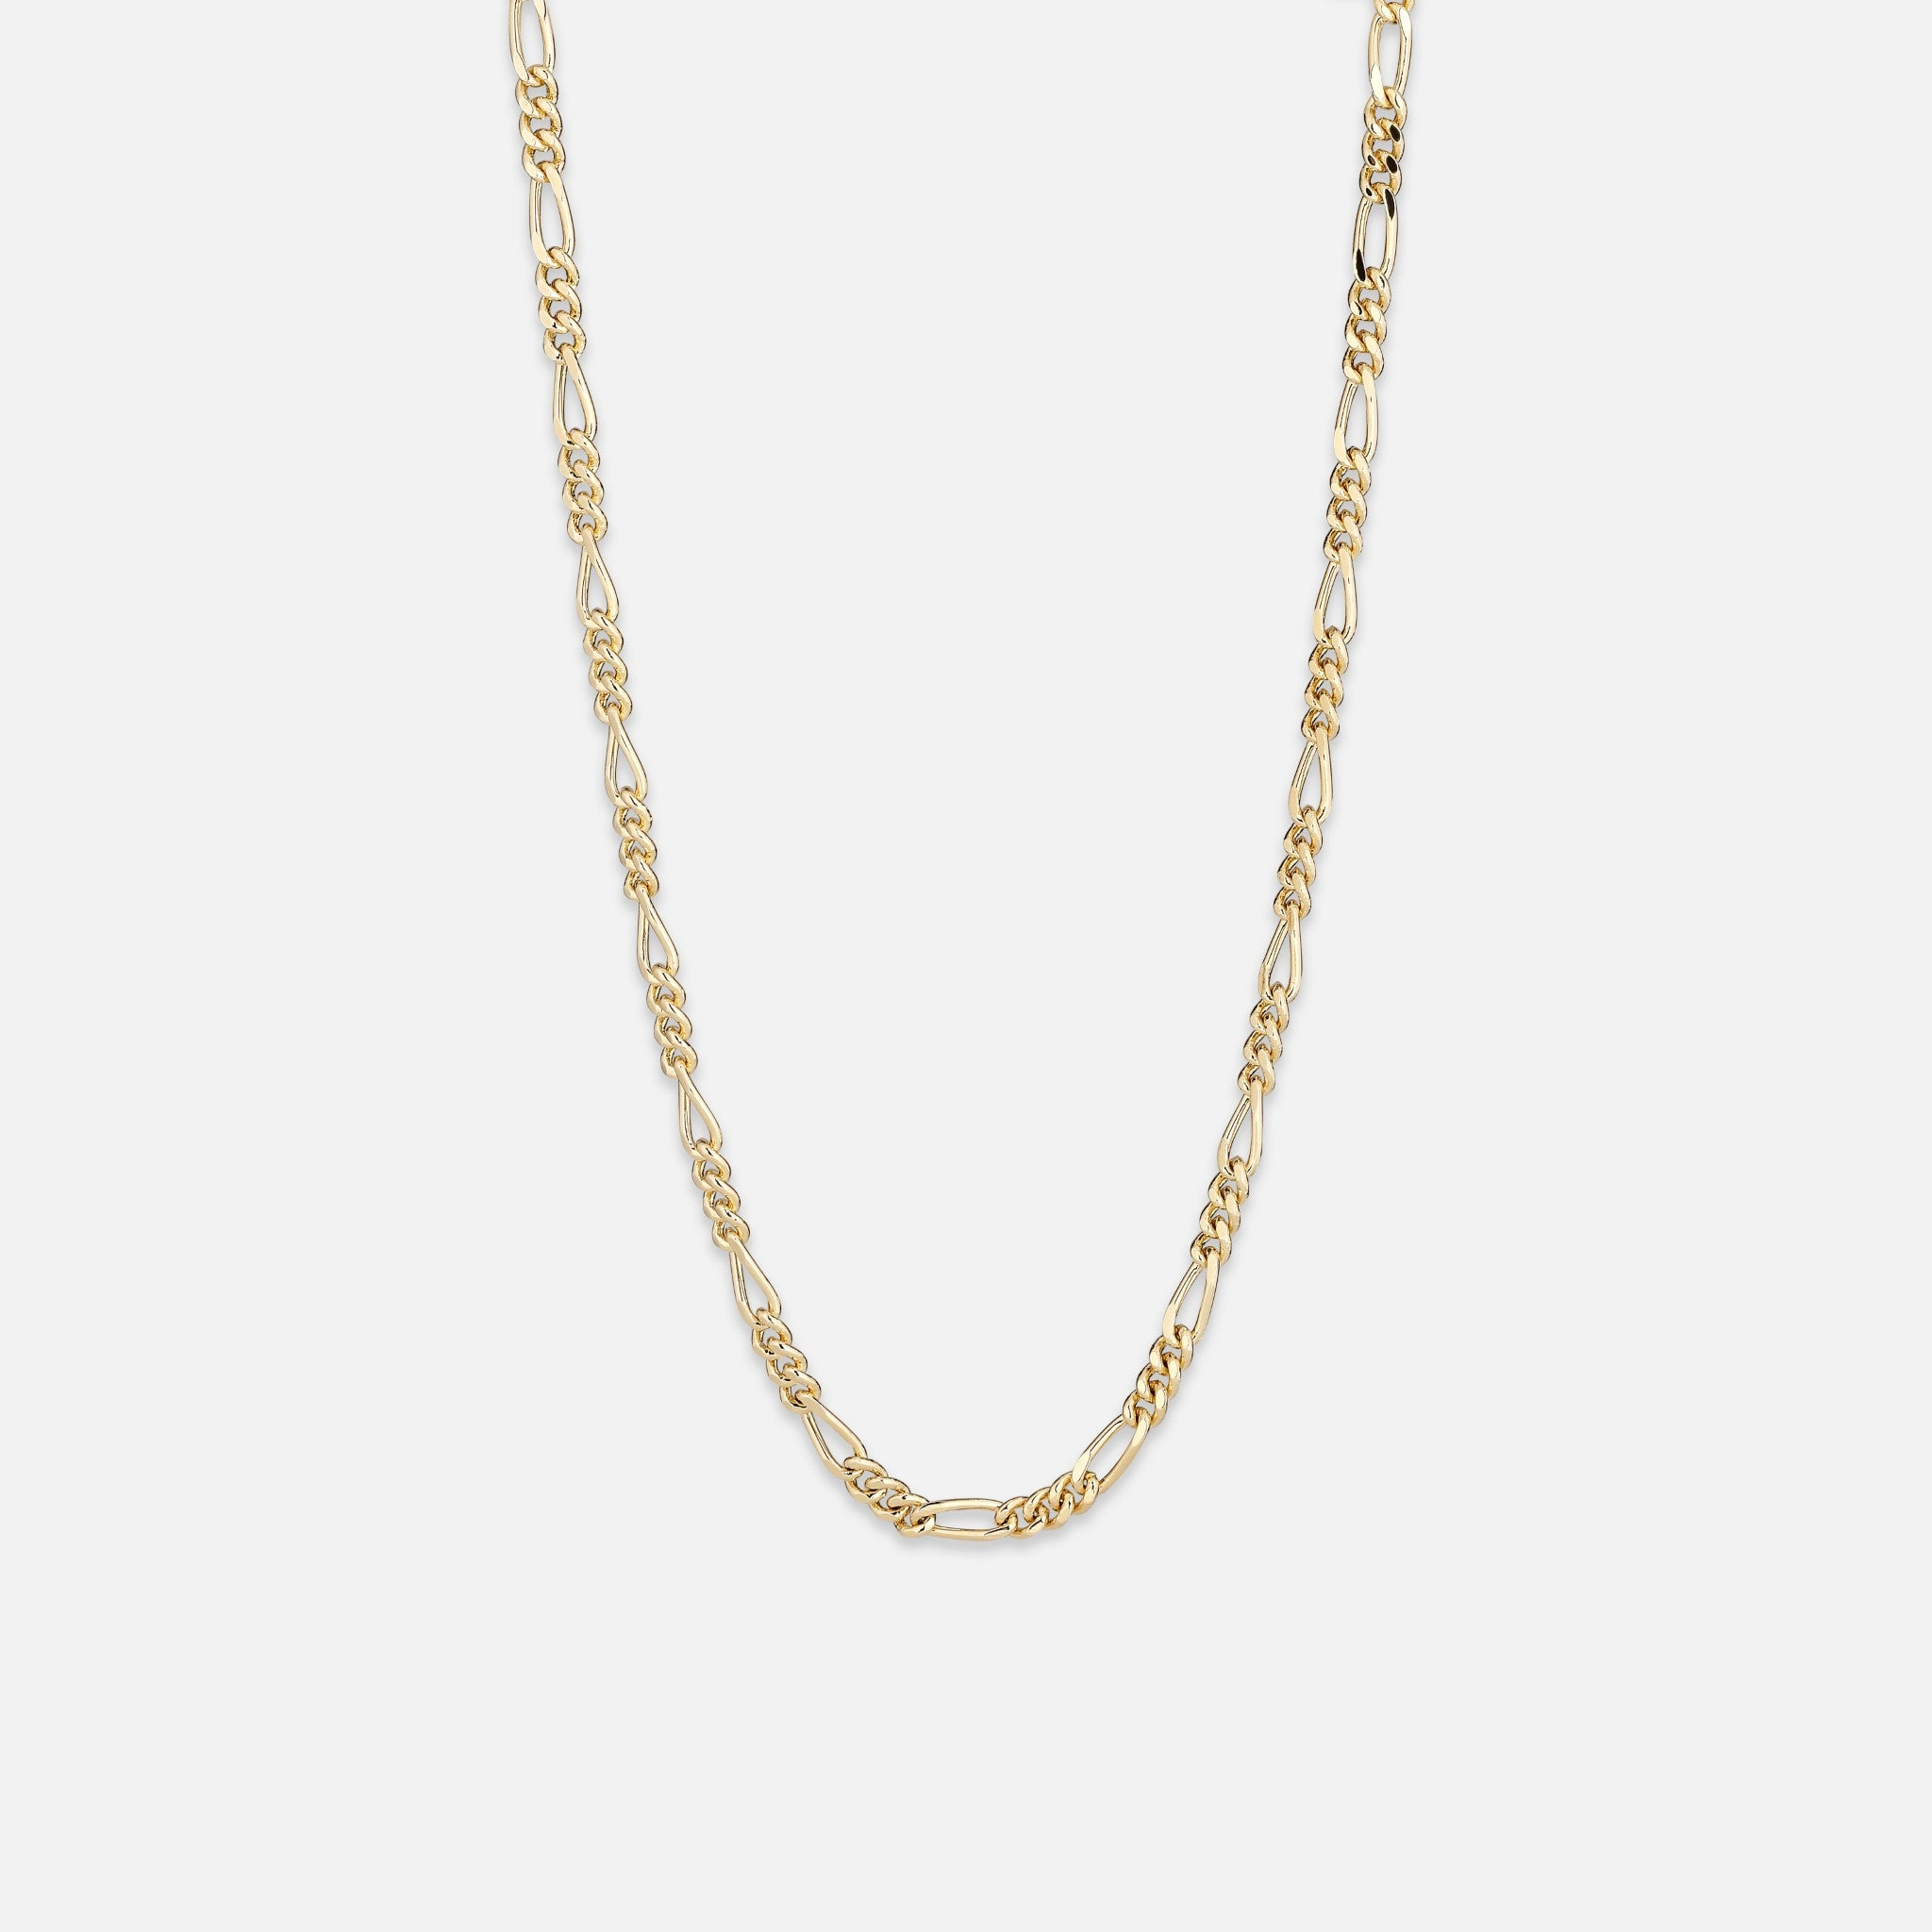 North North North Gold Necklace | Wolfgang | Figaro Chain Necklace Gold